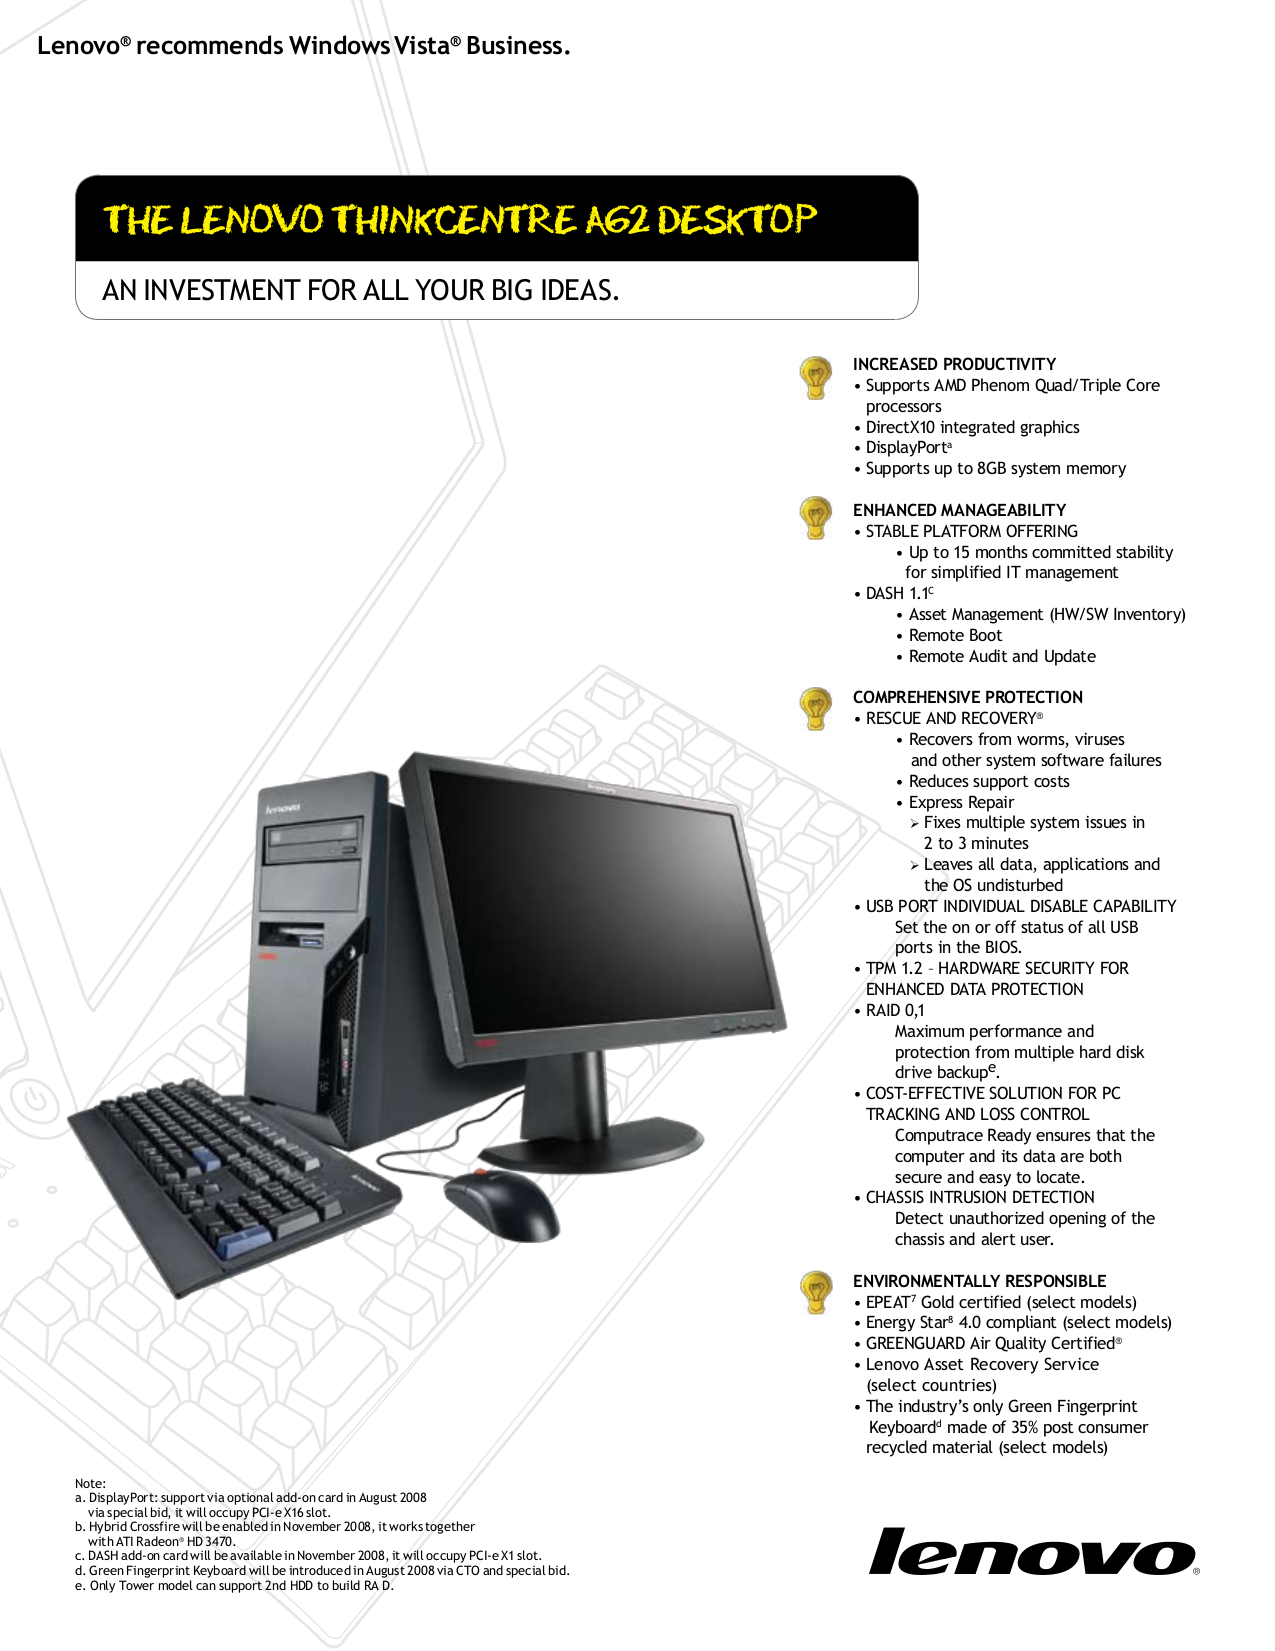 pdf for Lenovo Desktop ThinkCentre A62 7062 manual